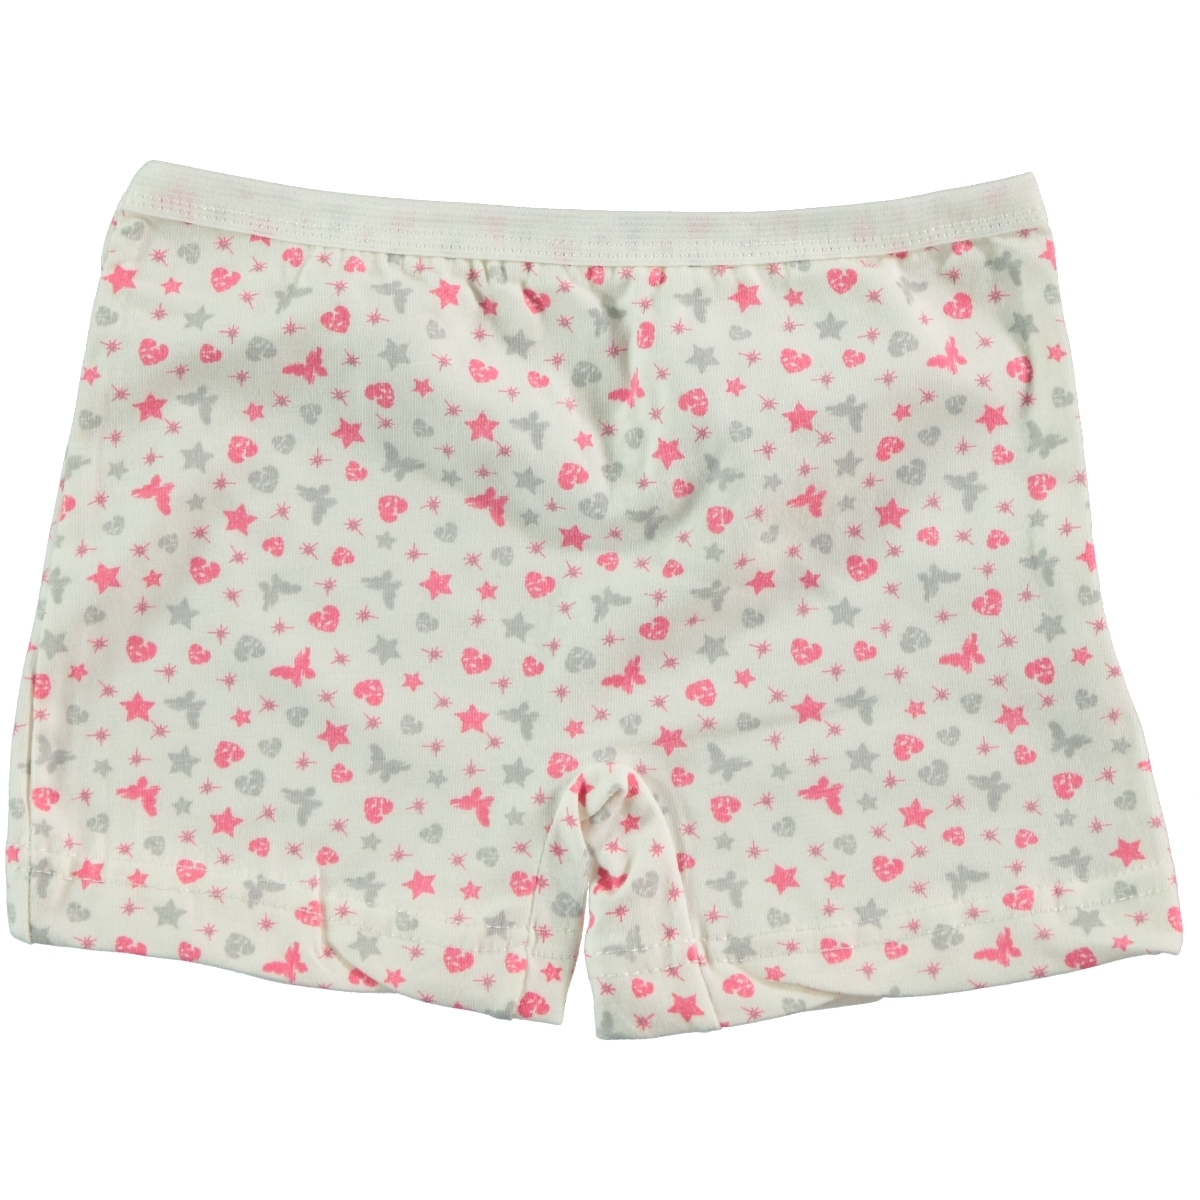 Öts Ages 2-12 Boy Girl Shorts Ecru